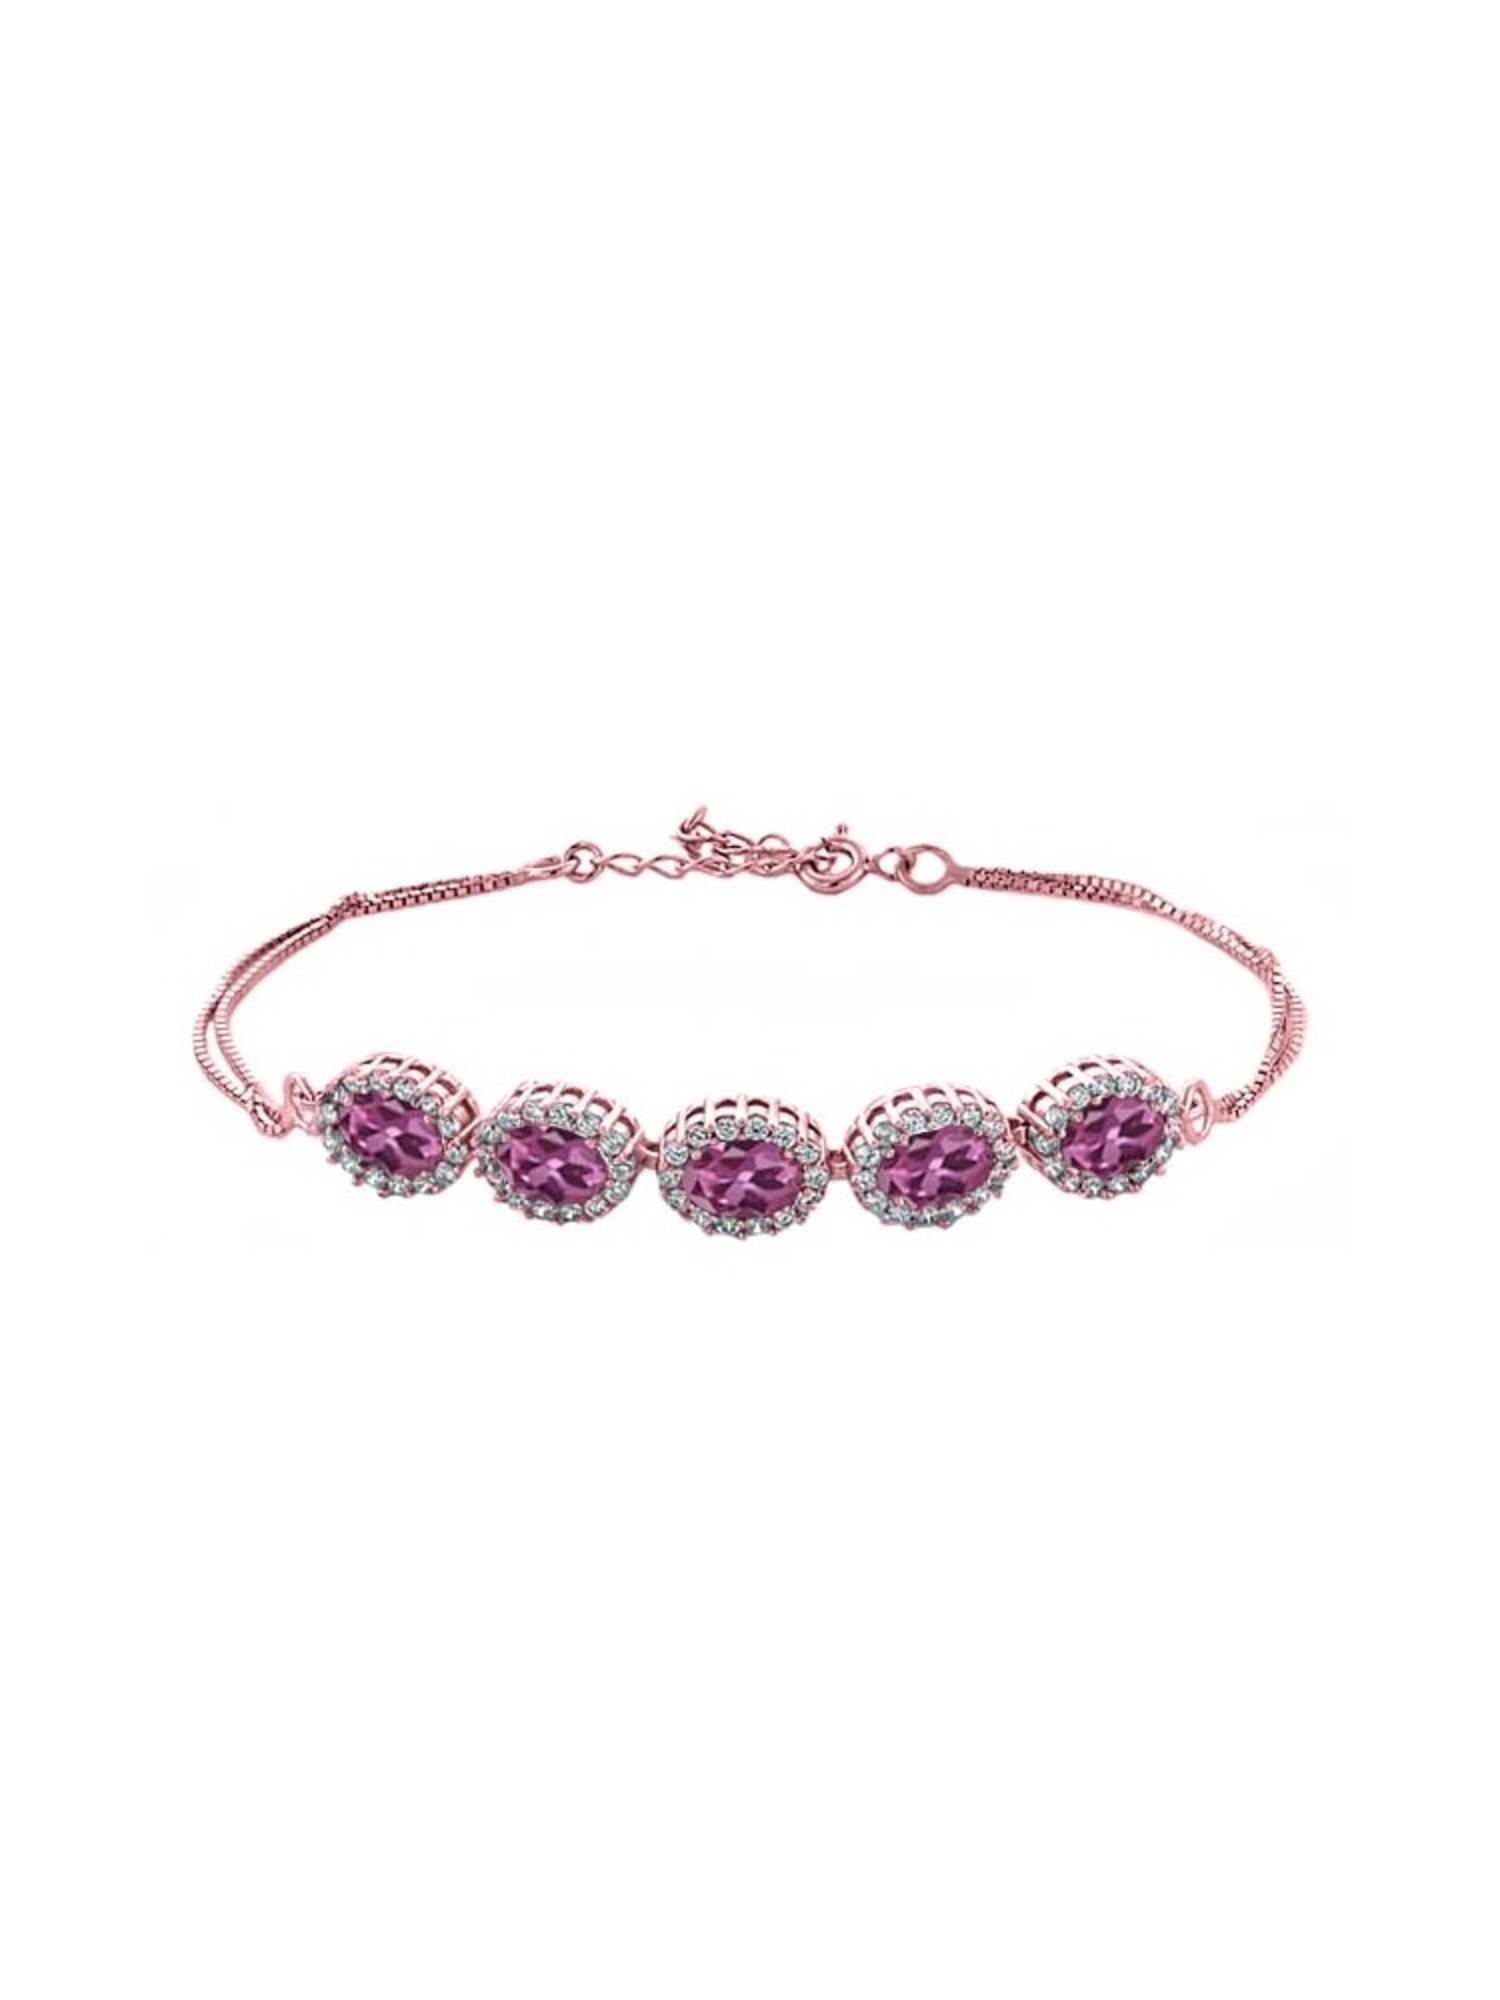 5.29 Ct Oval Pink Tourmaline 18K Rose Gold Plated Silver Bracelet by